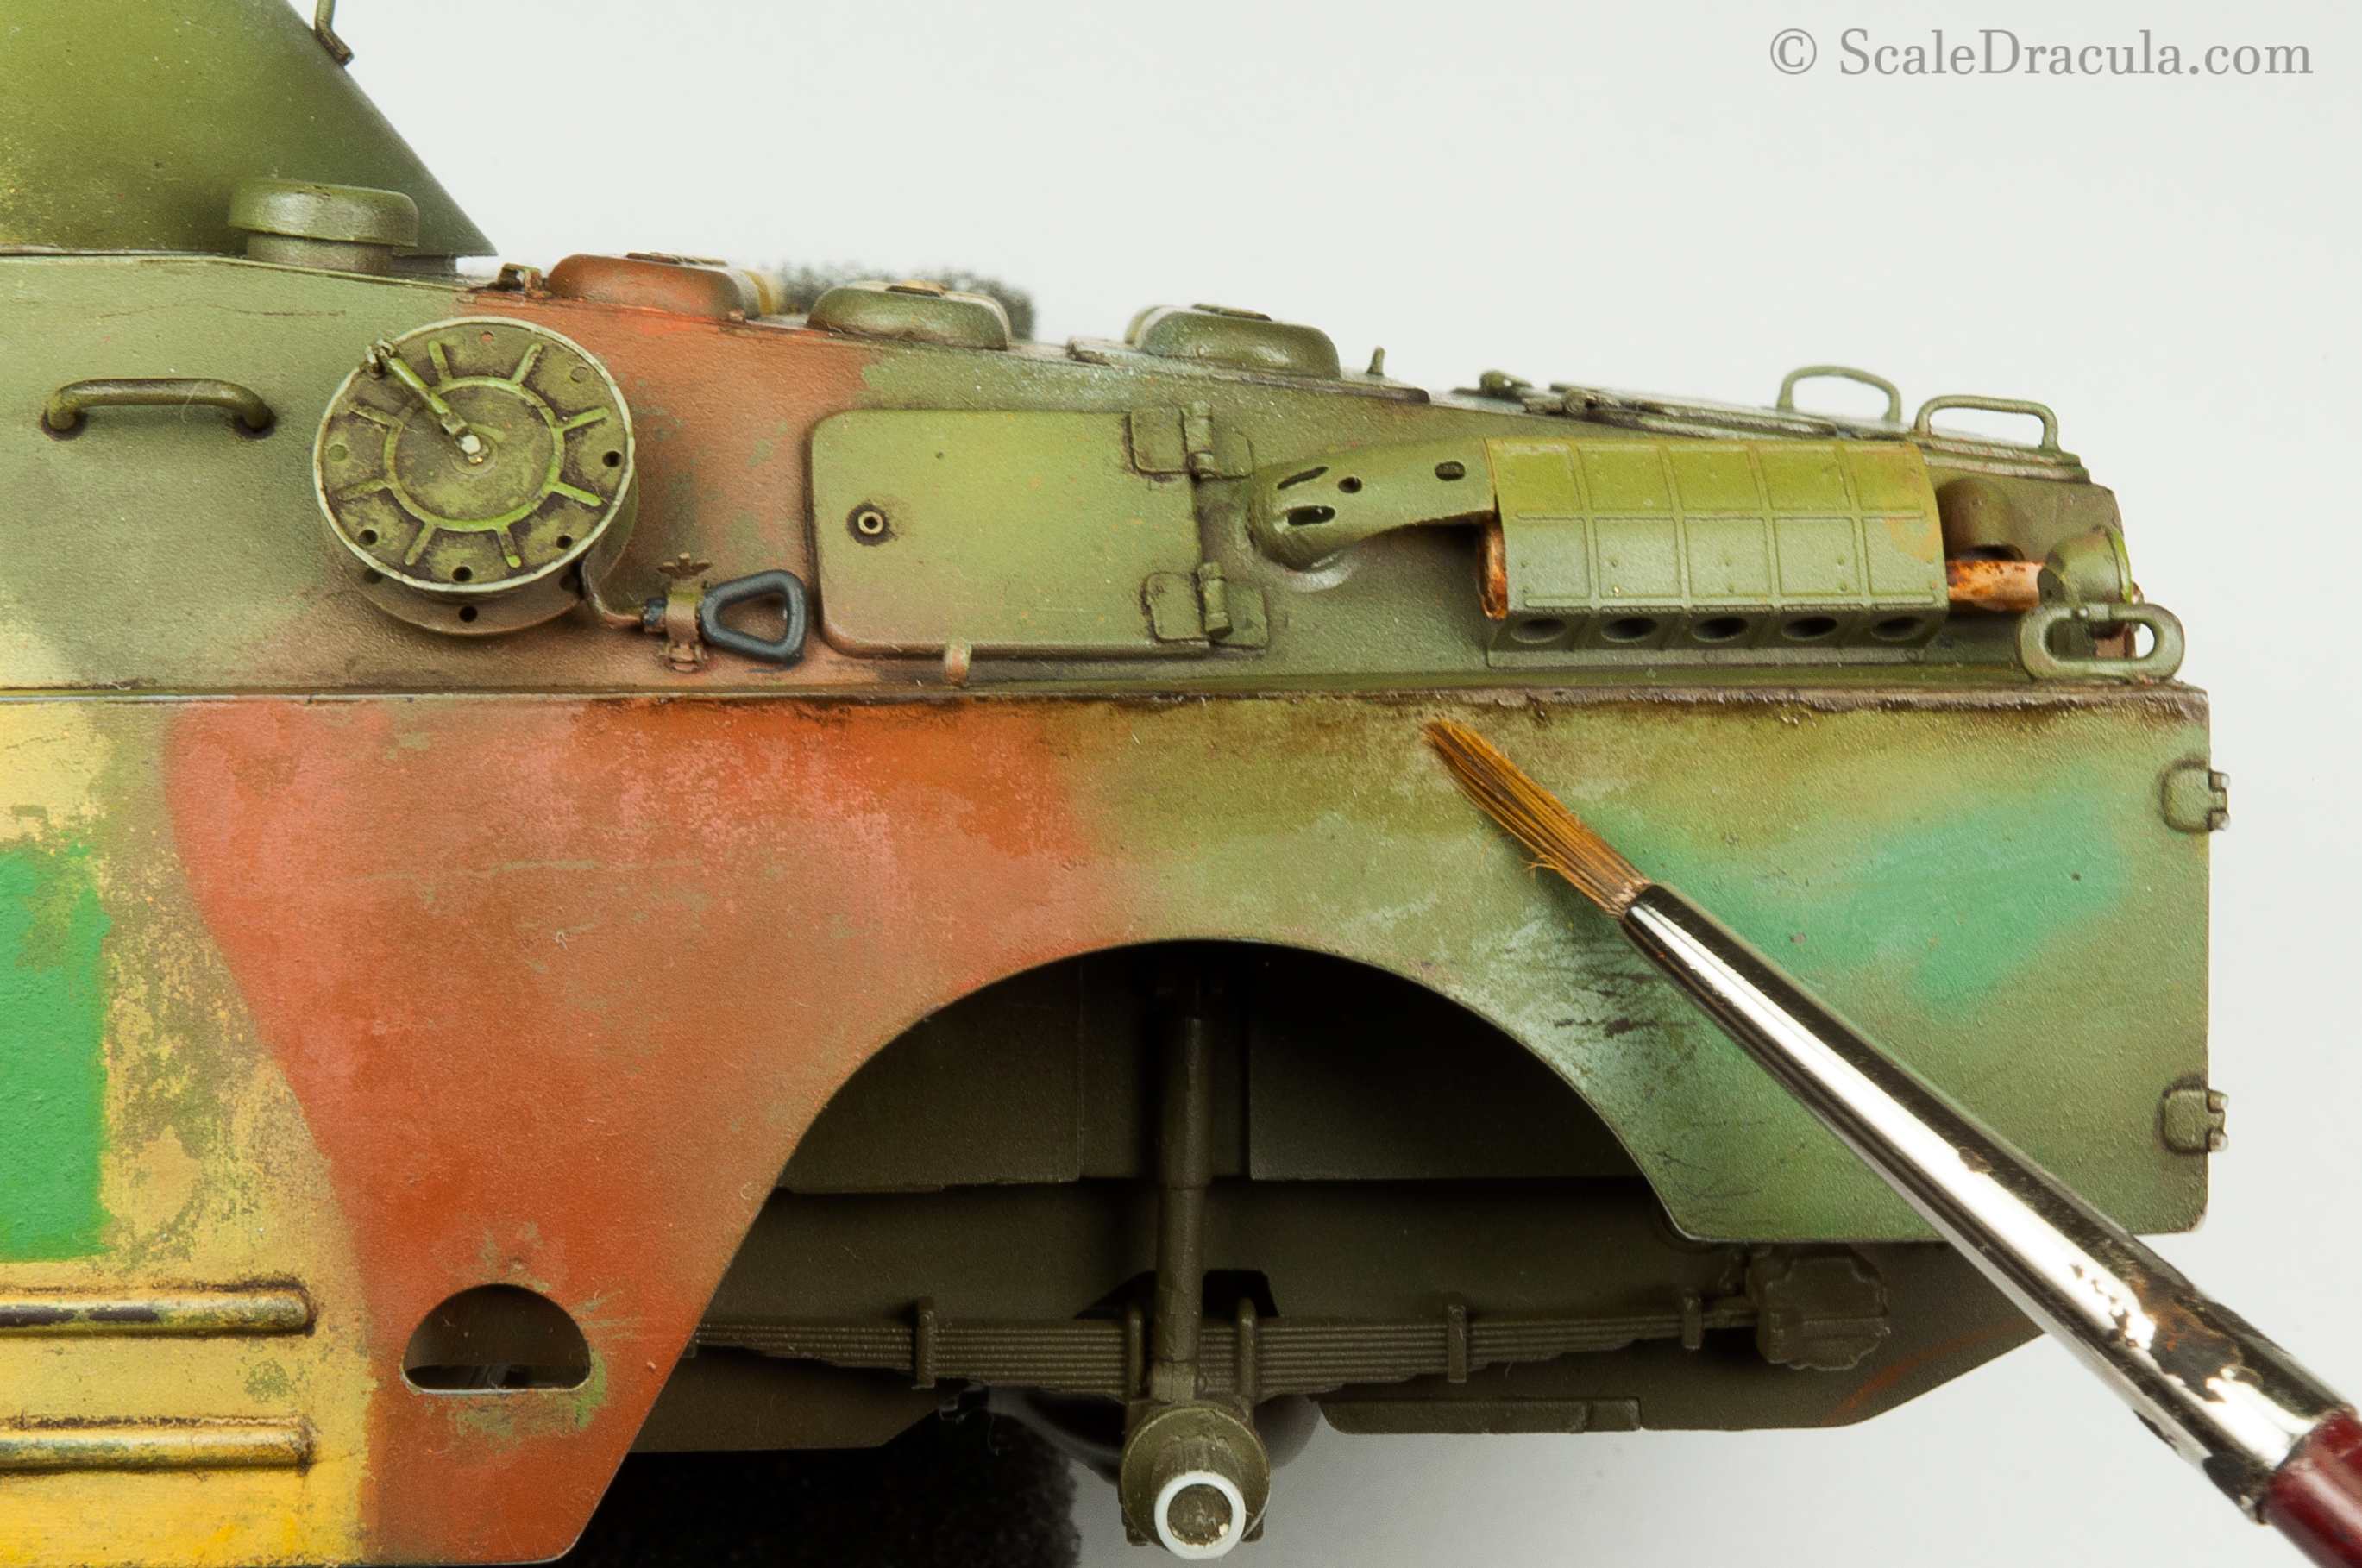 Weathering with oils, BRDM-2 by Trumpeter